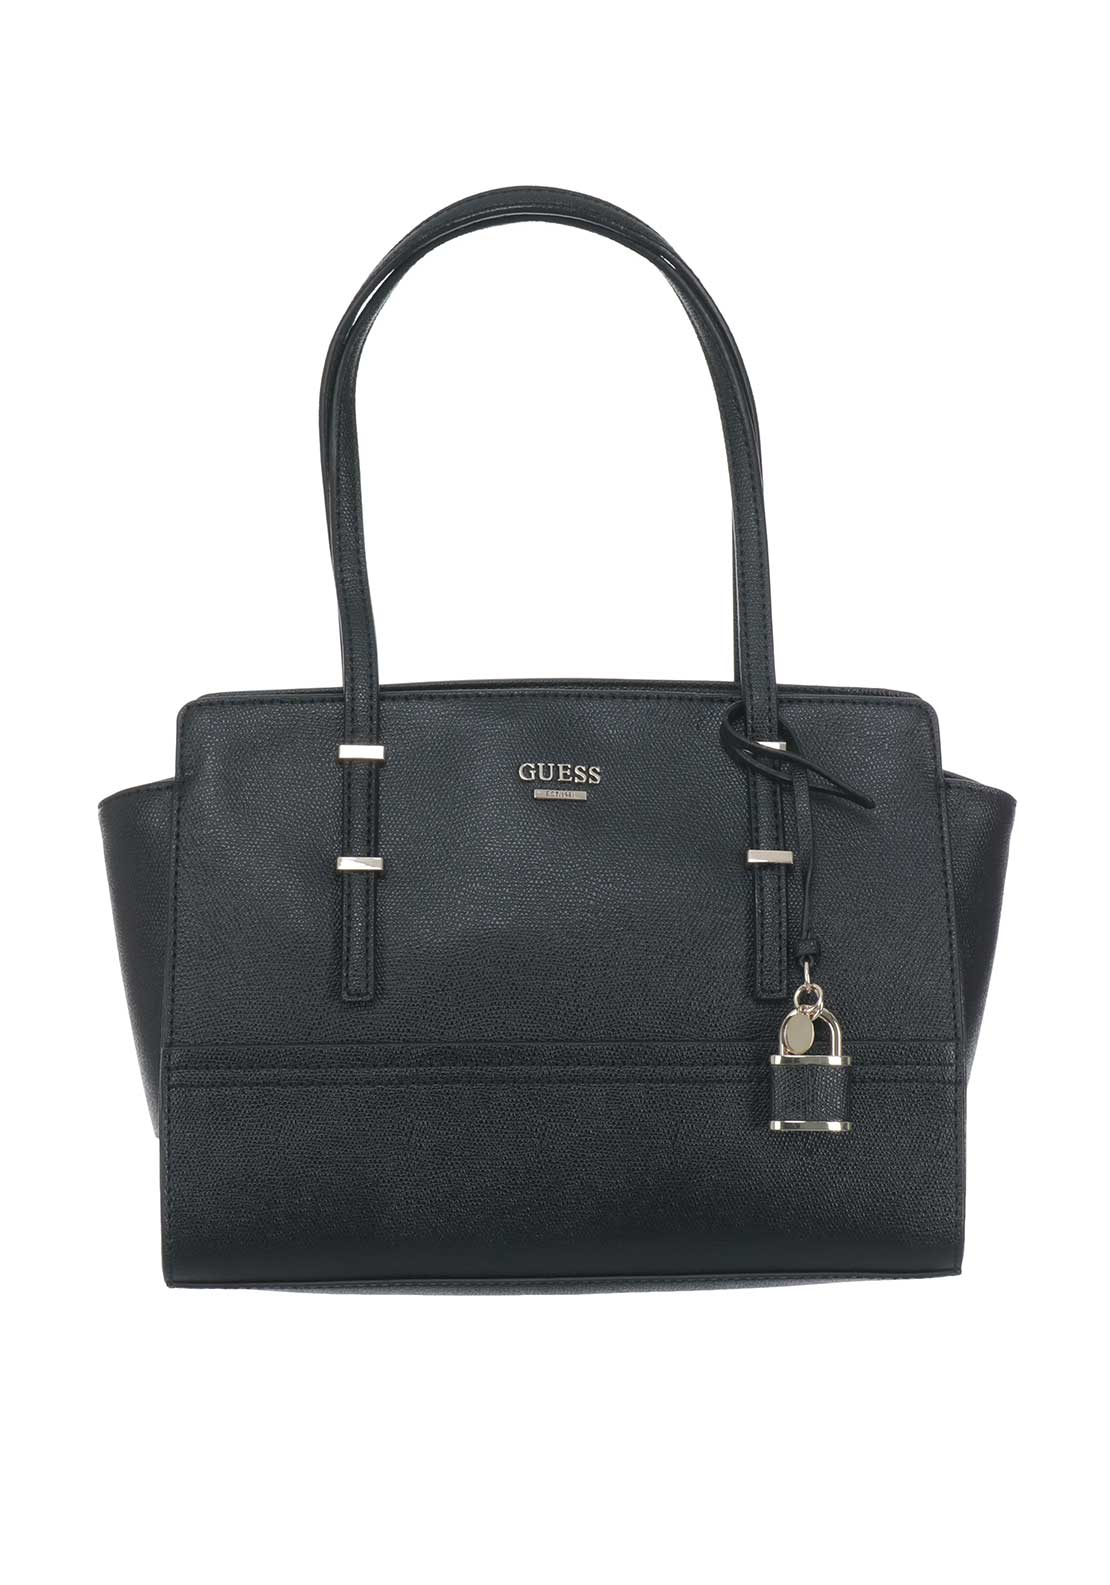 Guess Devyn Satchel Bag, Black